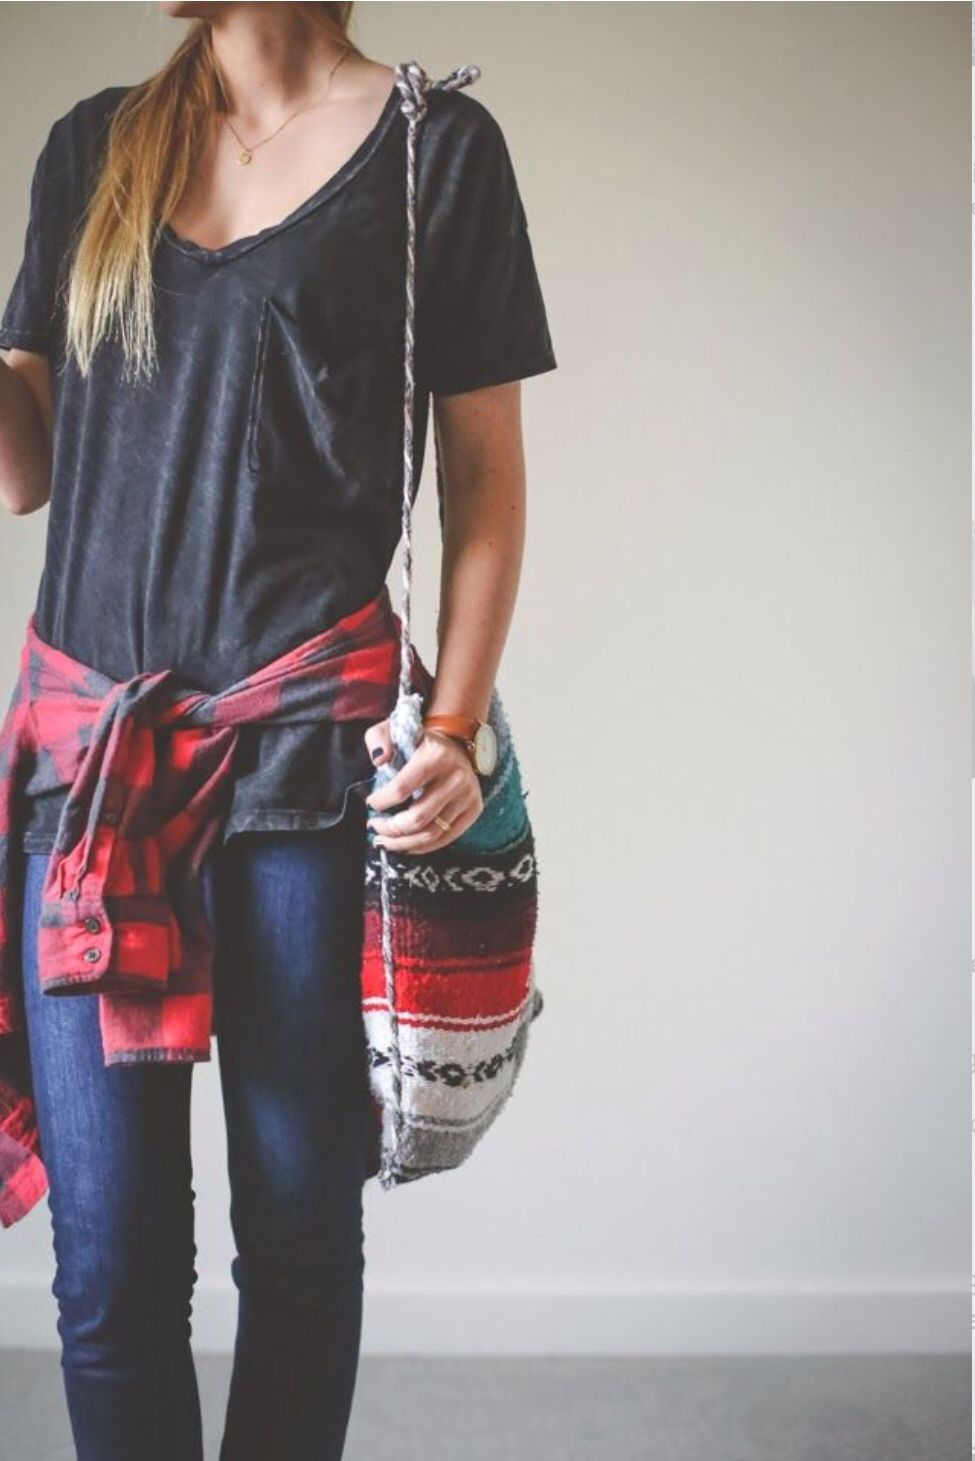 Flannel shirt bag  Casual outfit  Dream outfits  Pinterest  Clothes Fall winter and